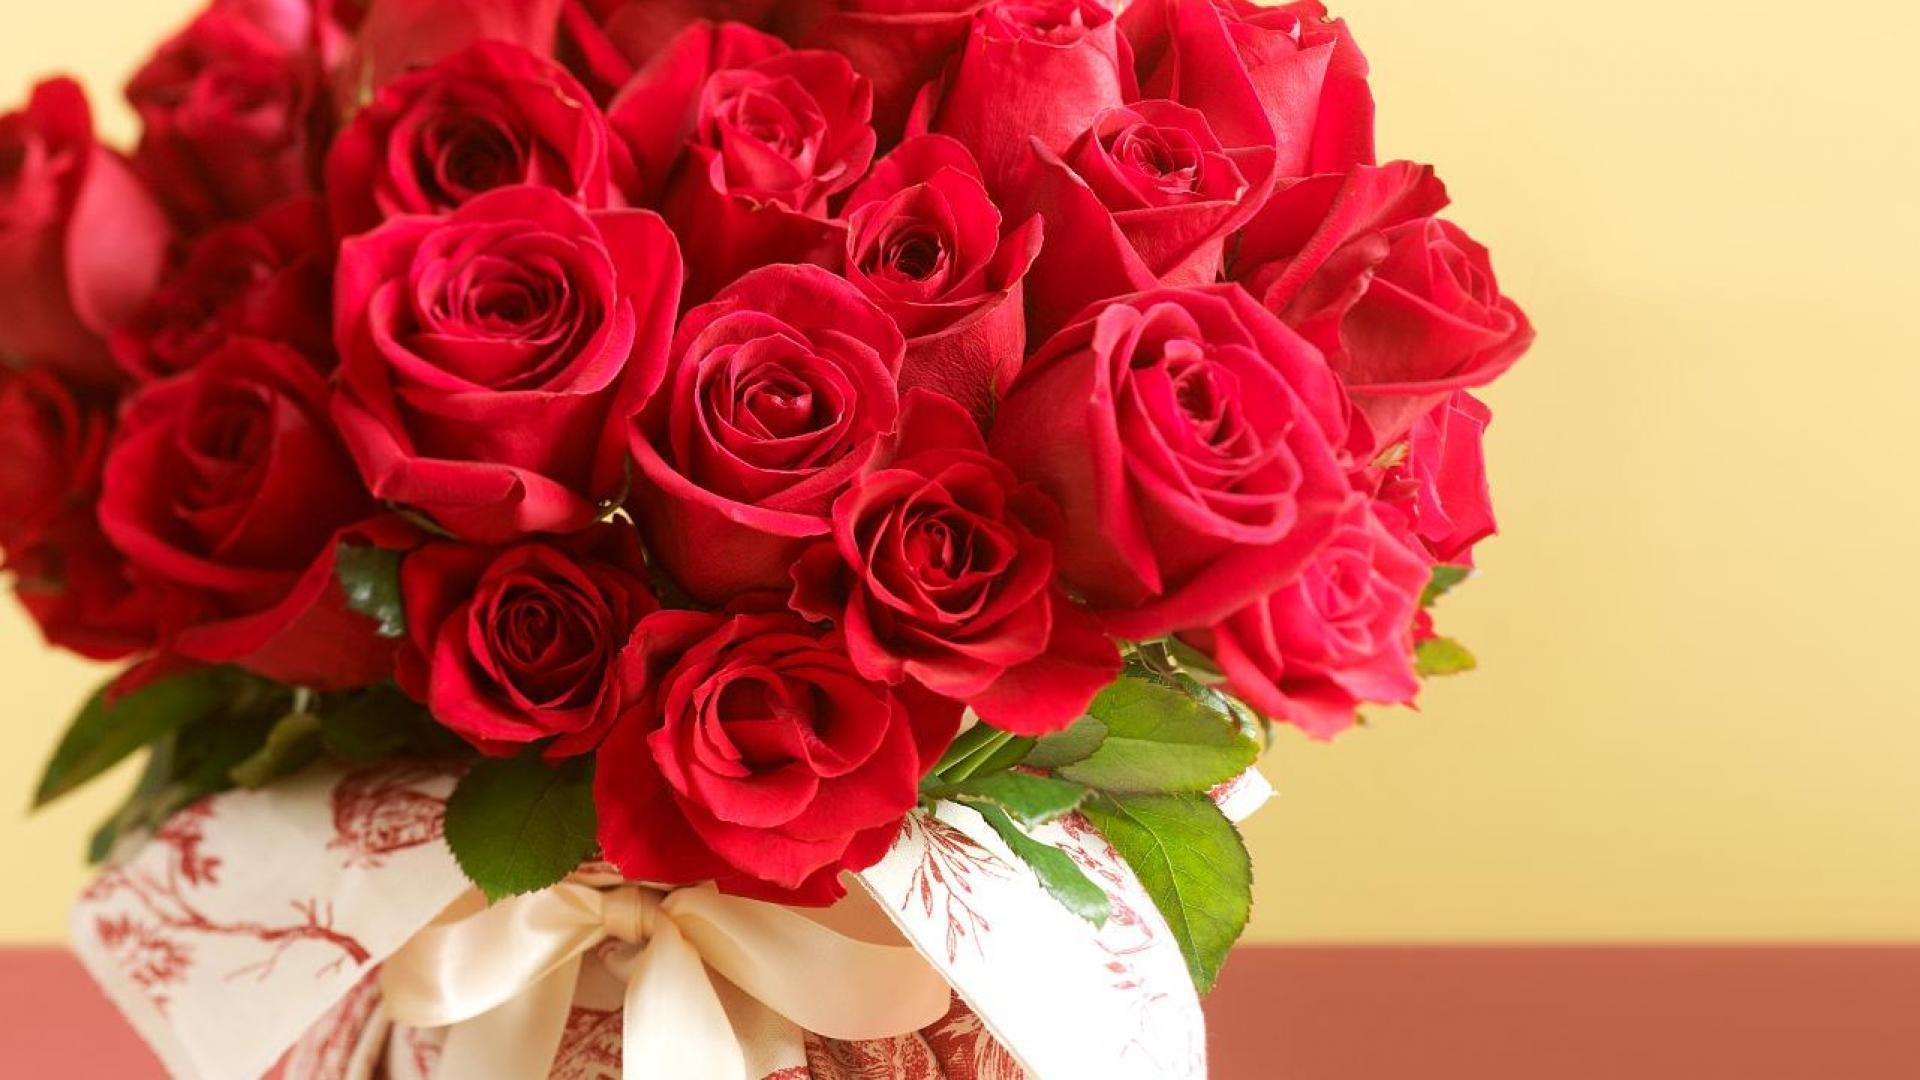 1920x1080, Valentines For > Beautiful Red Roses Wallpapers - Beautiful Red Roses Wallpapers For Desktop - HD Wallpaper